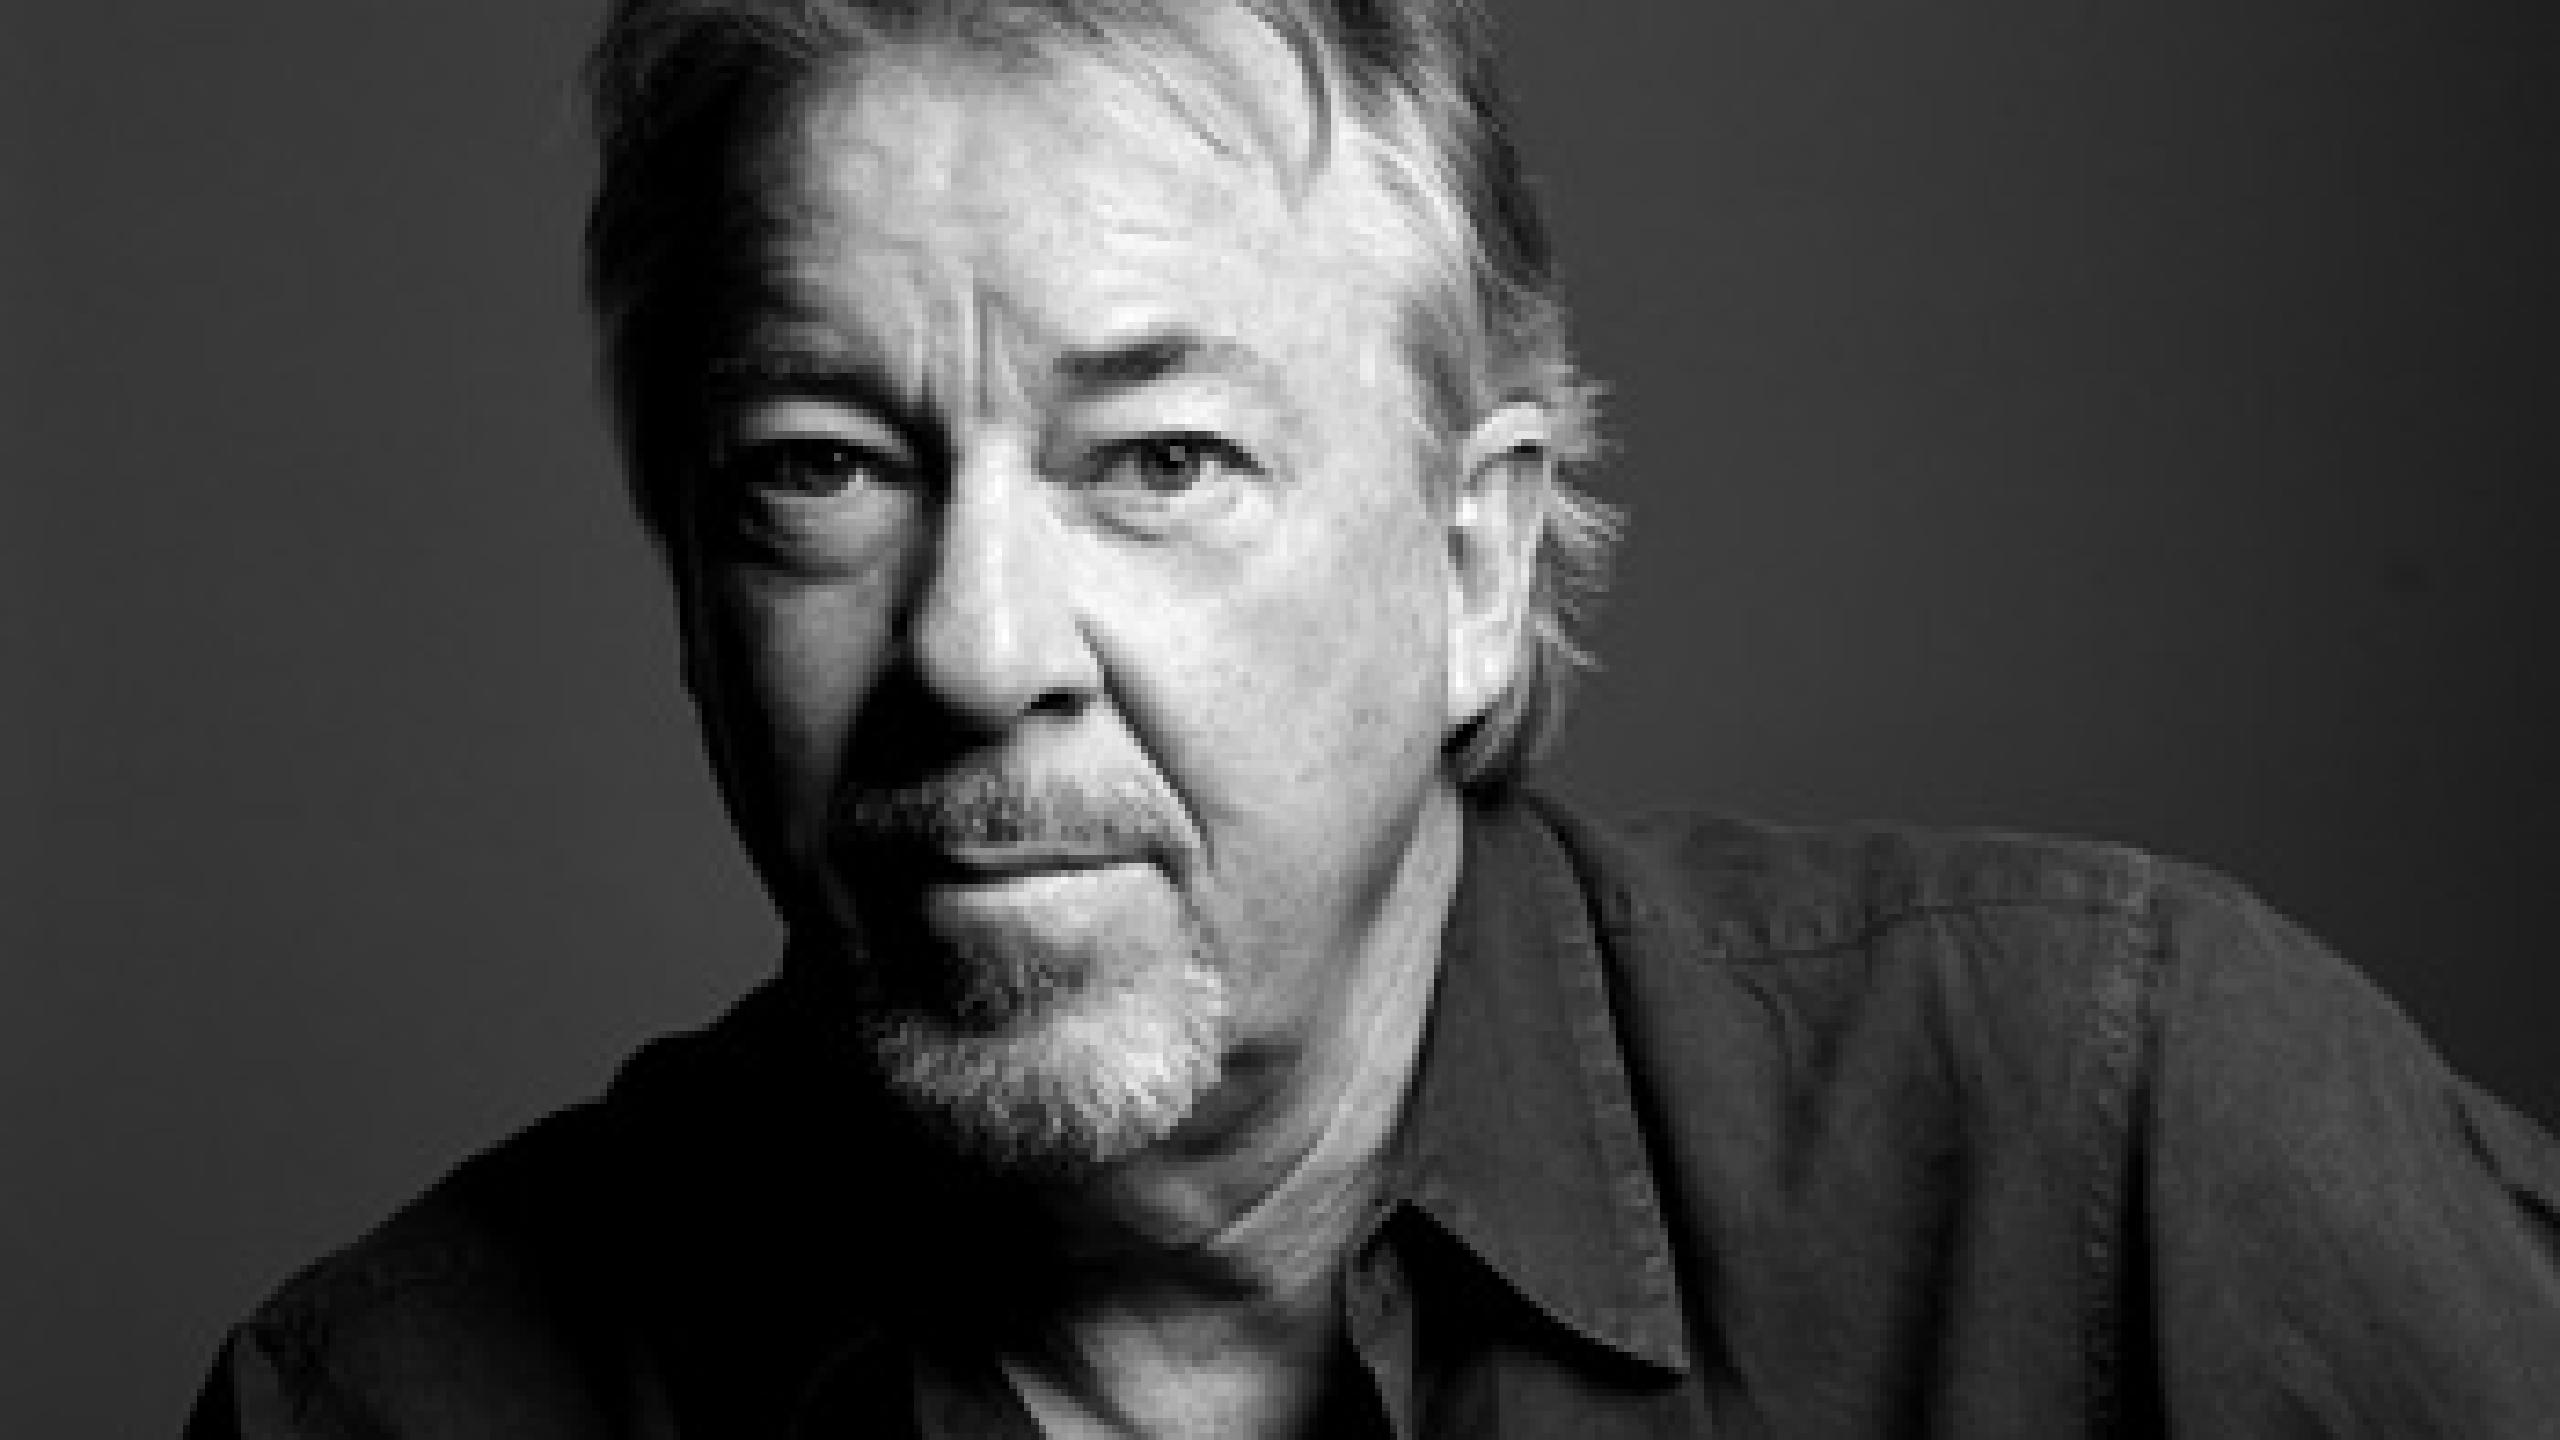 Boz Scaggs Tour Dates 2020 Boz Scaggs tour dates 2019 2020. Boz Scaggs tickets and concerts